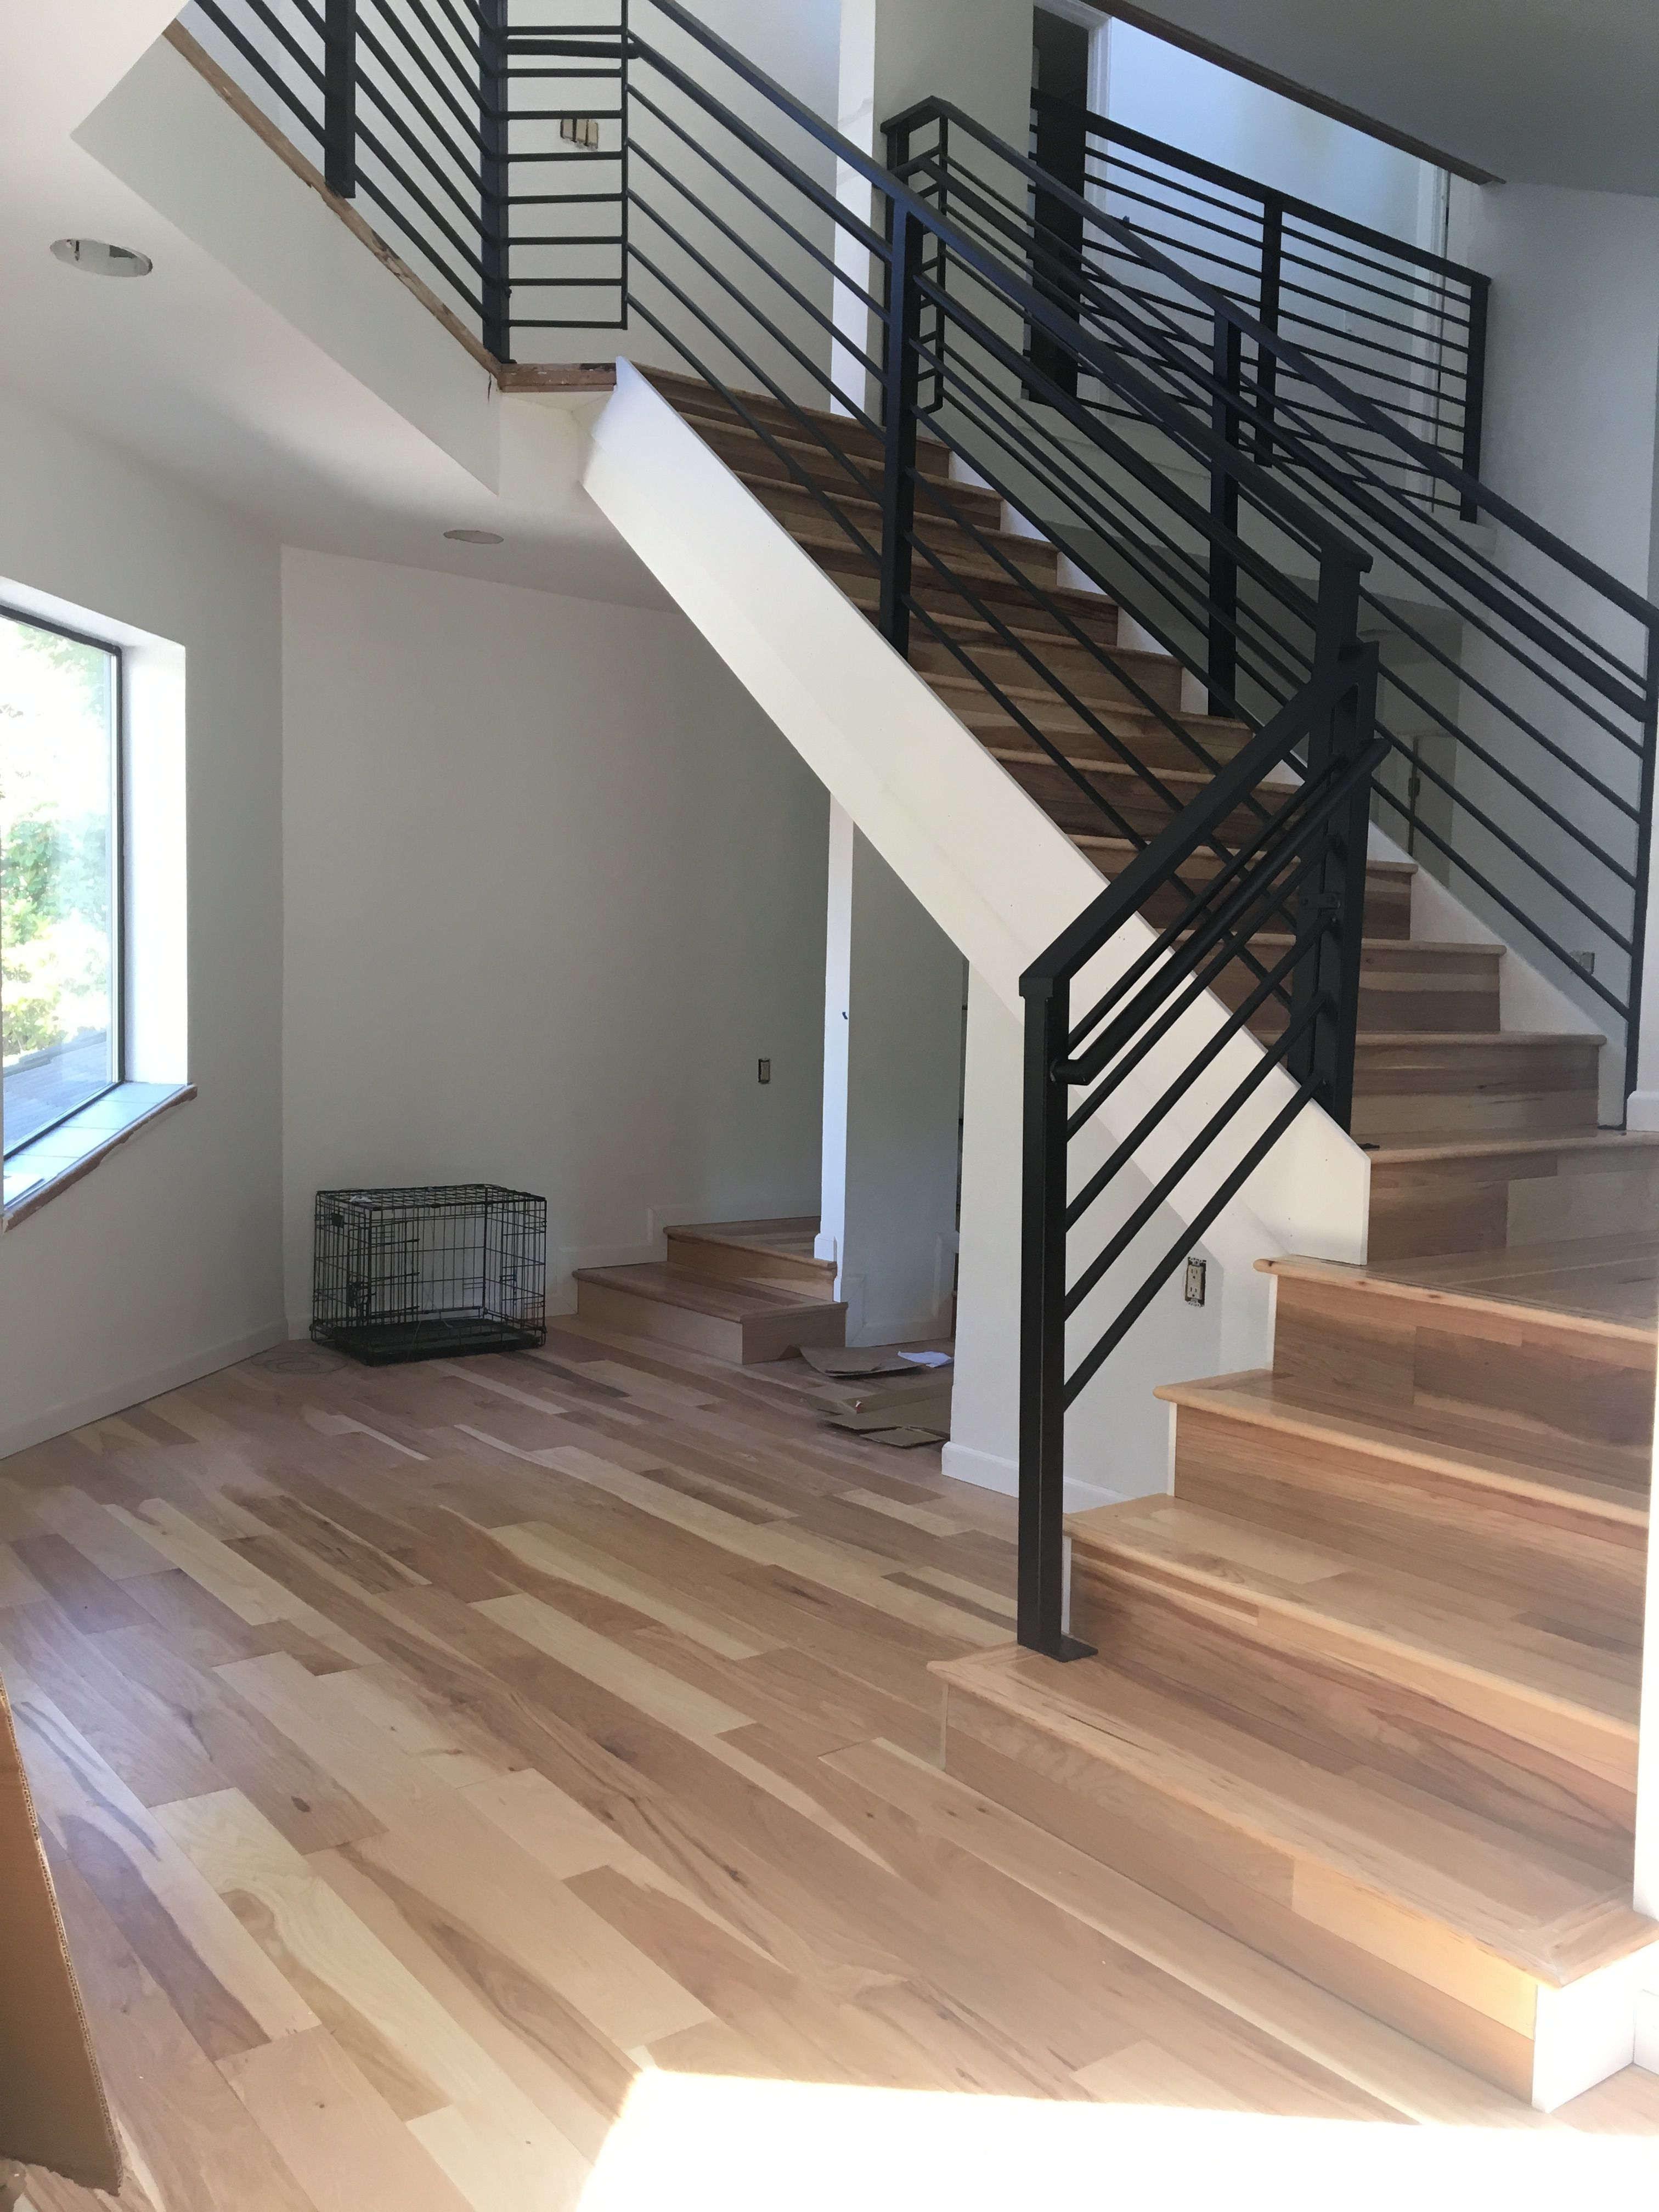 After Living Room Stair Railing Black Horizontal Powder Coated | Black Horizontal Stair Railing | Metal | Linear | Interior | Wood | Exterior